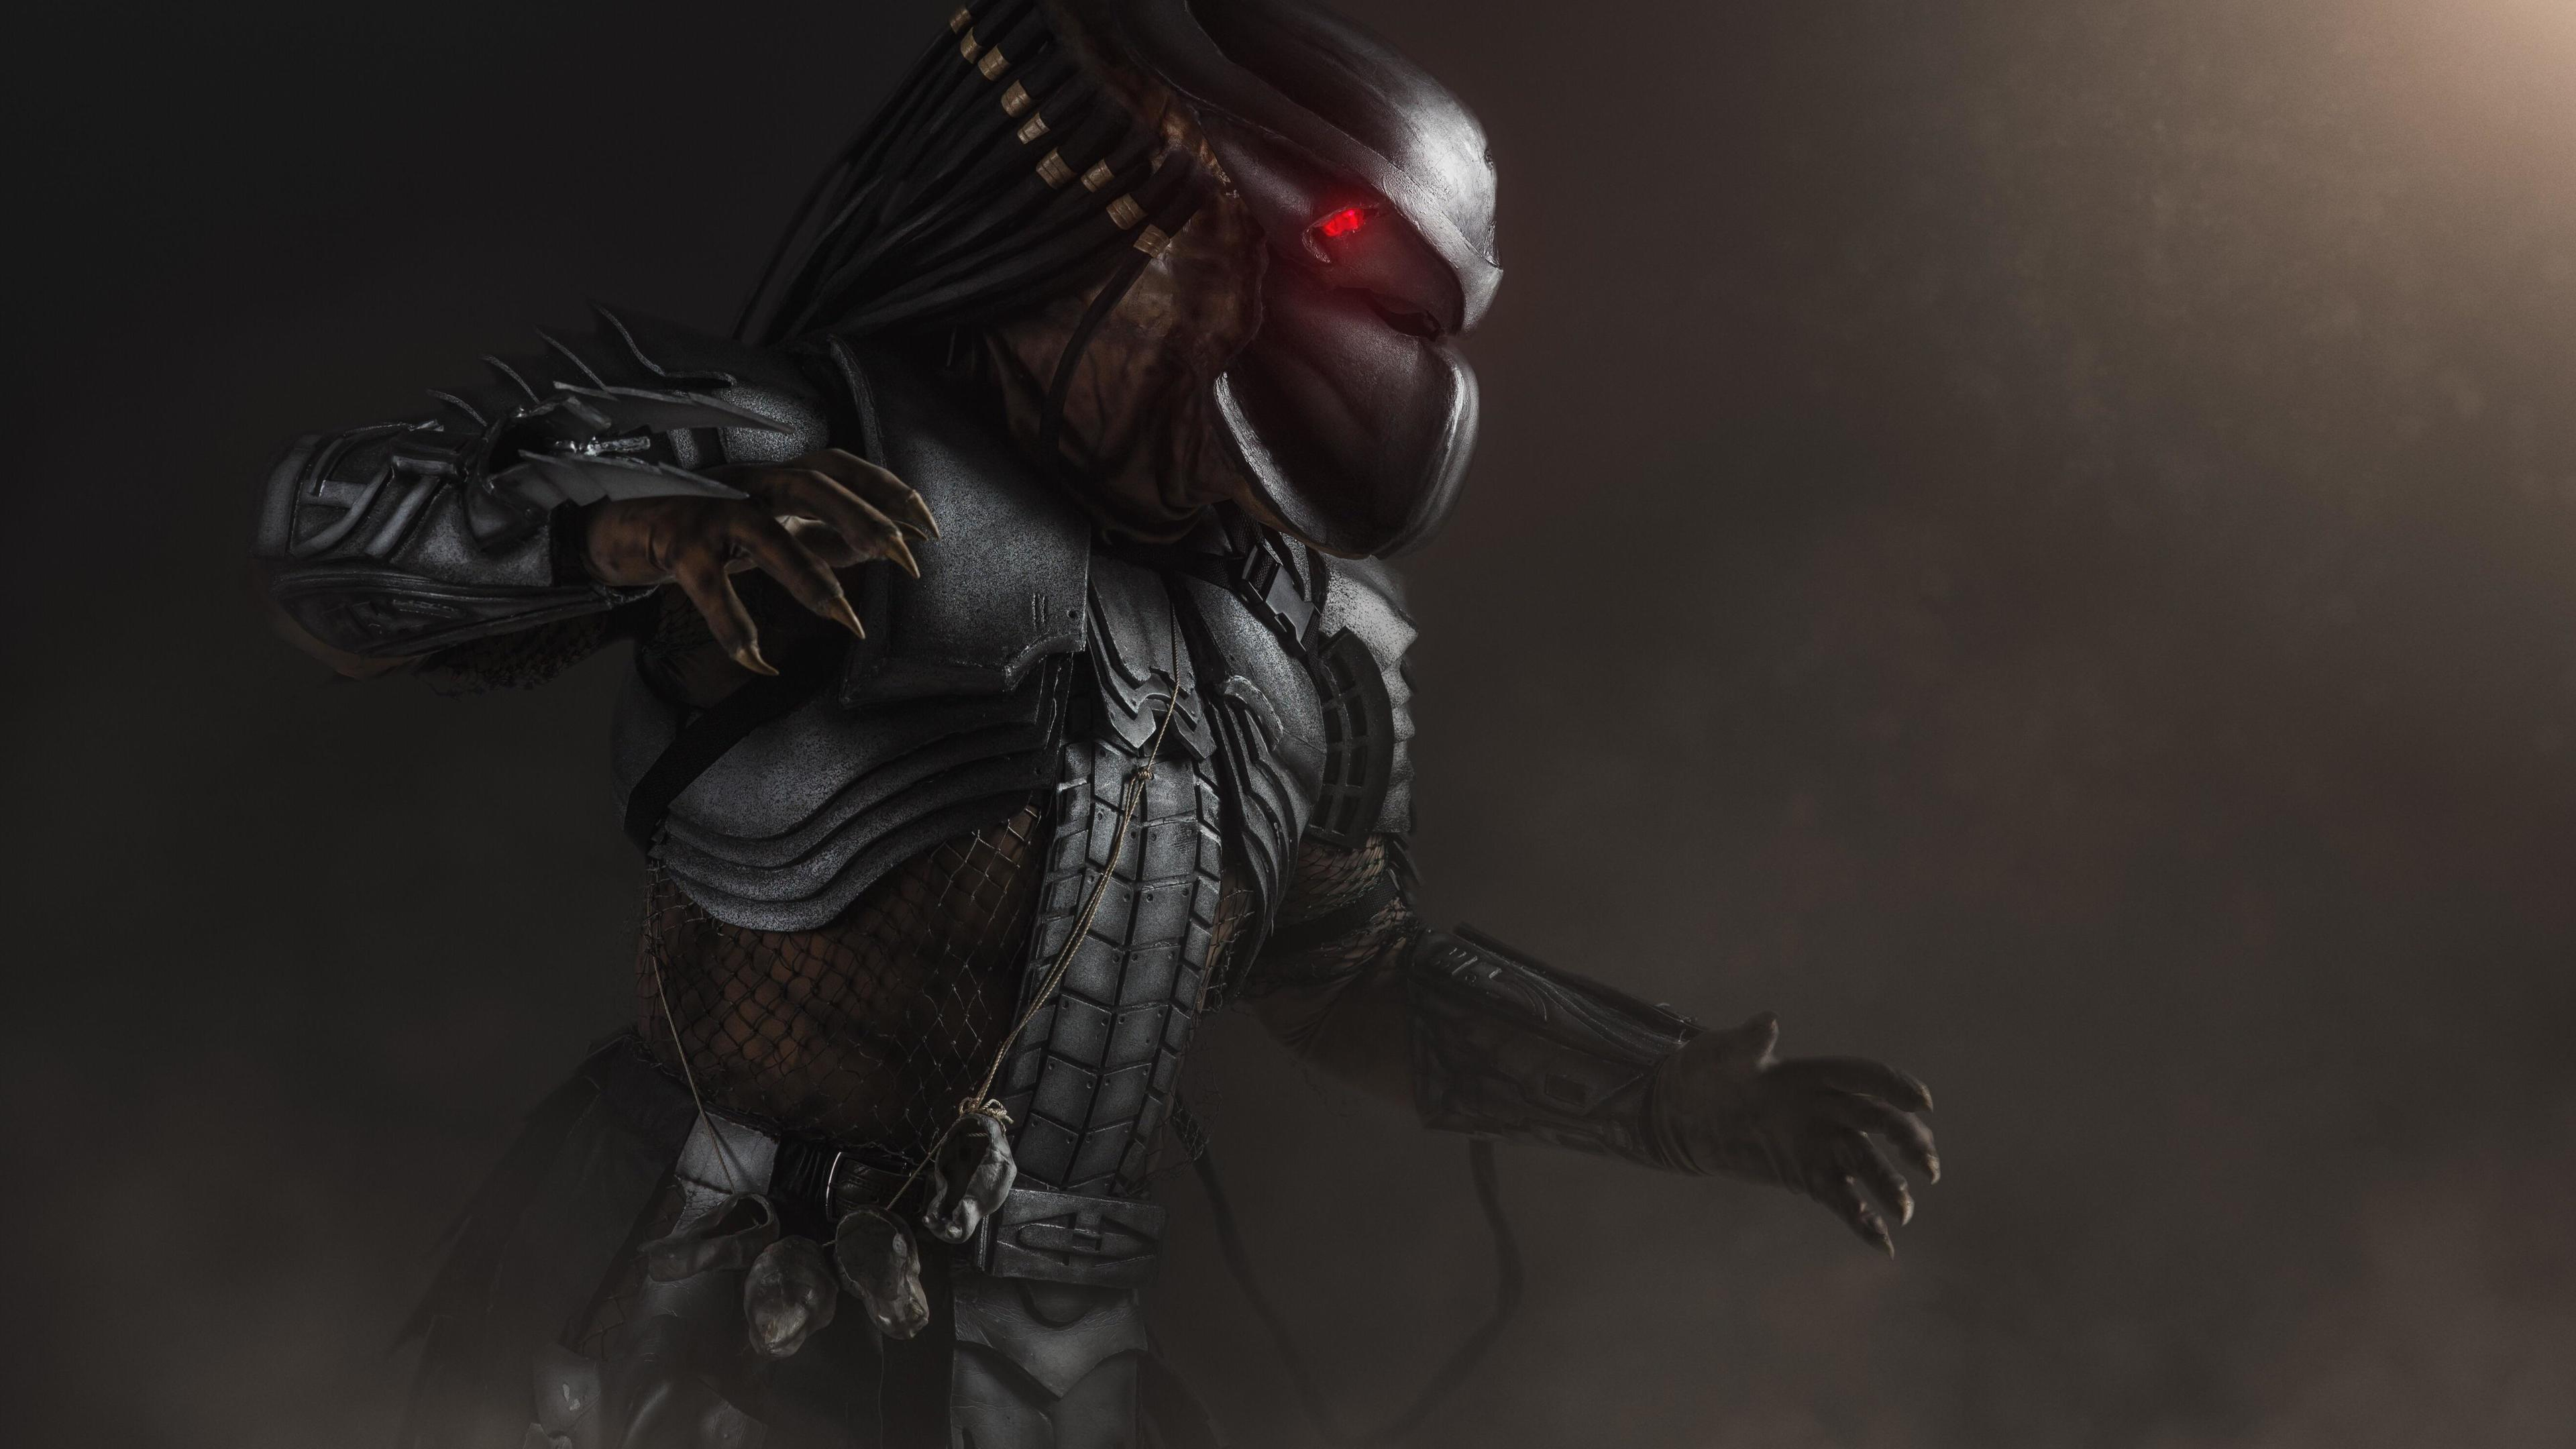 Wallpaper 4k Predator Cosplay 4k Wallpapers 5k Wallpapers